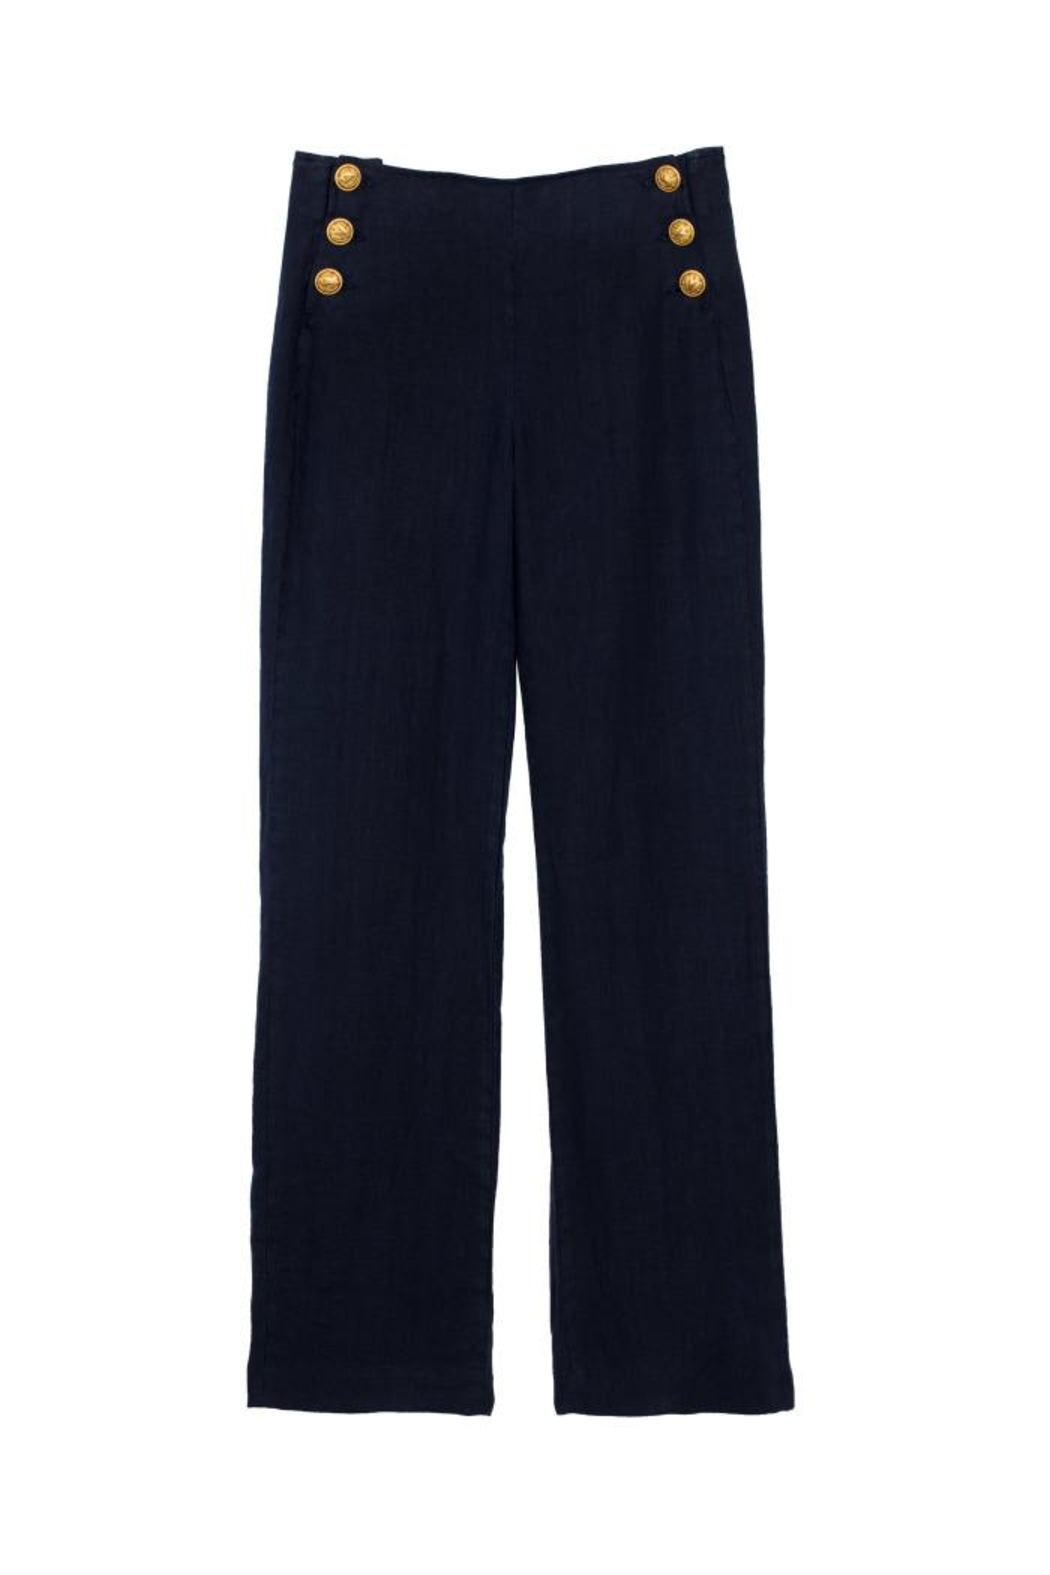 L'Agence Dee Sailor Pant - Side Cropped Image